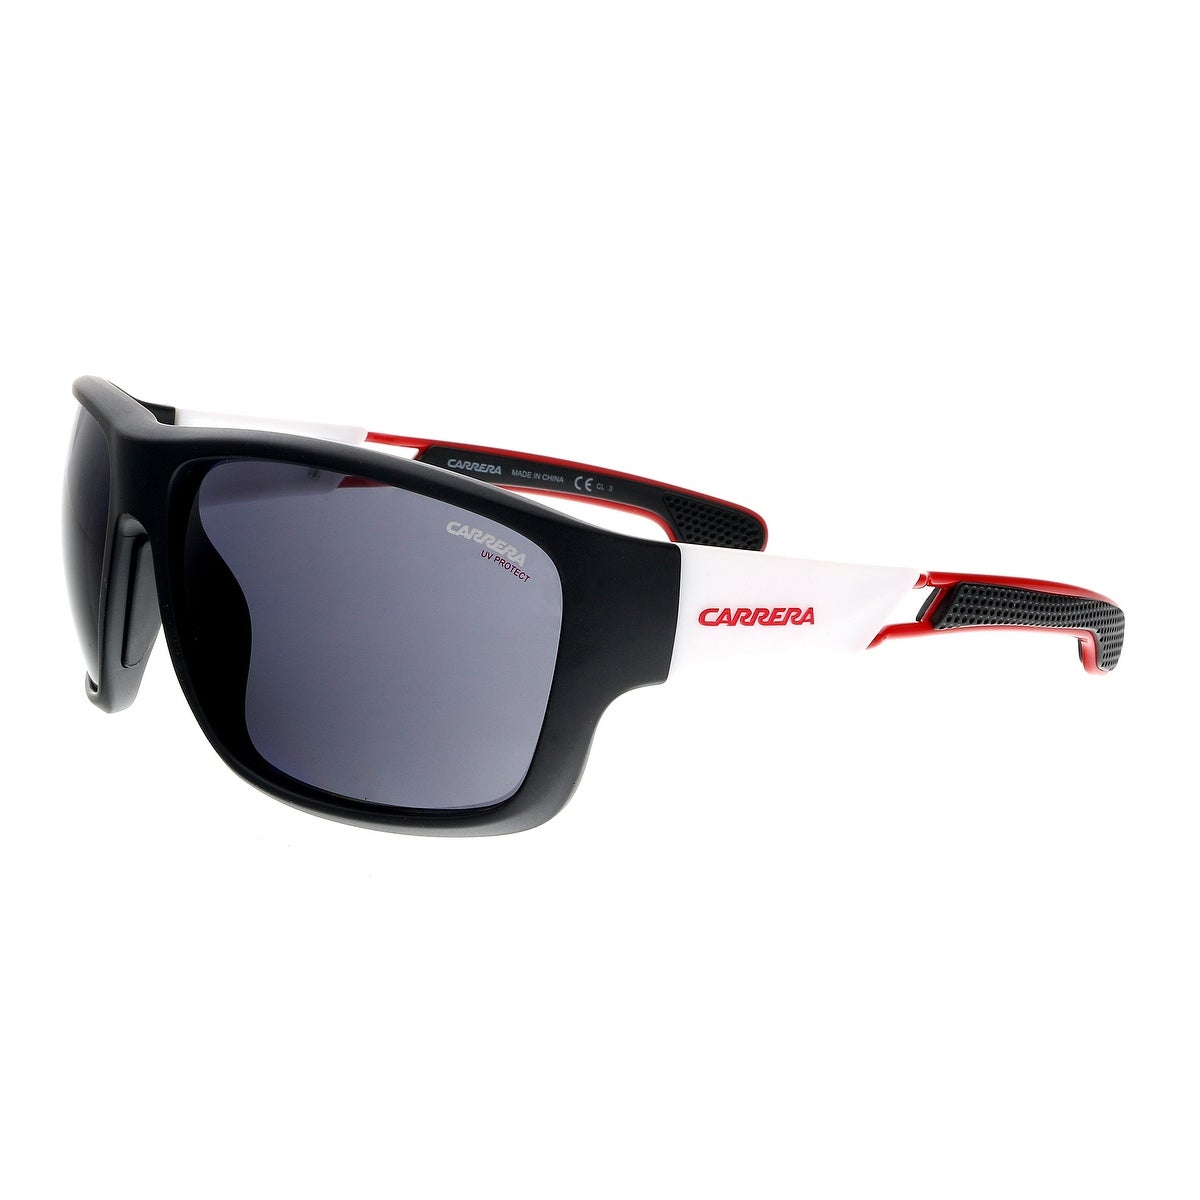 6018966f3780 Carrera Men's Sunglasses | Find Great Sunglasses Deals Shopping at Overstock